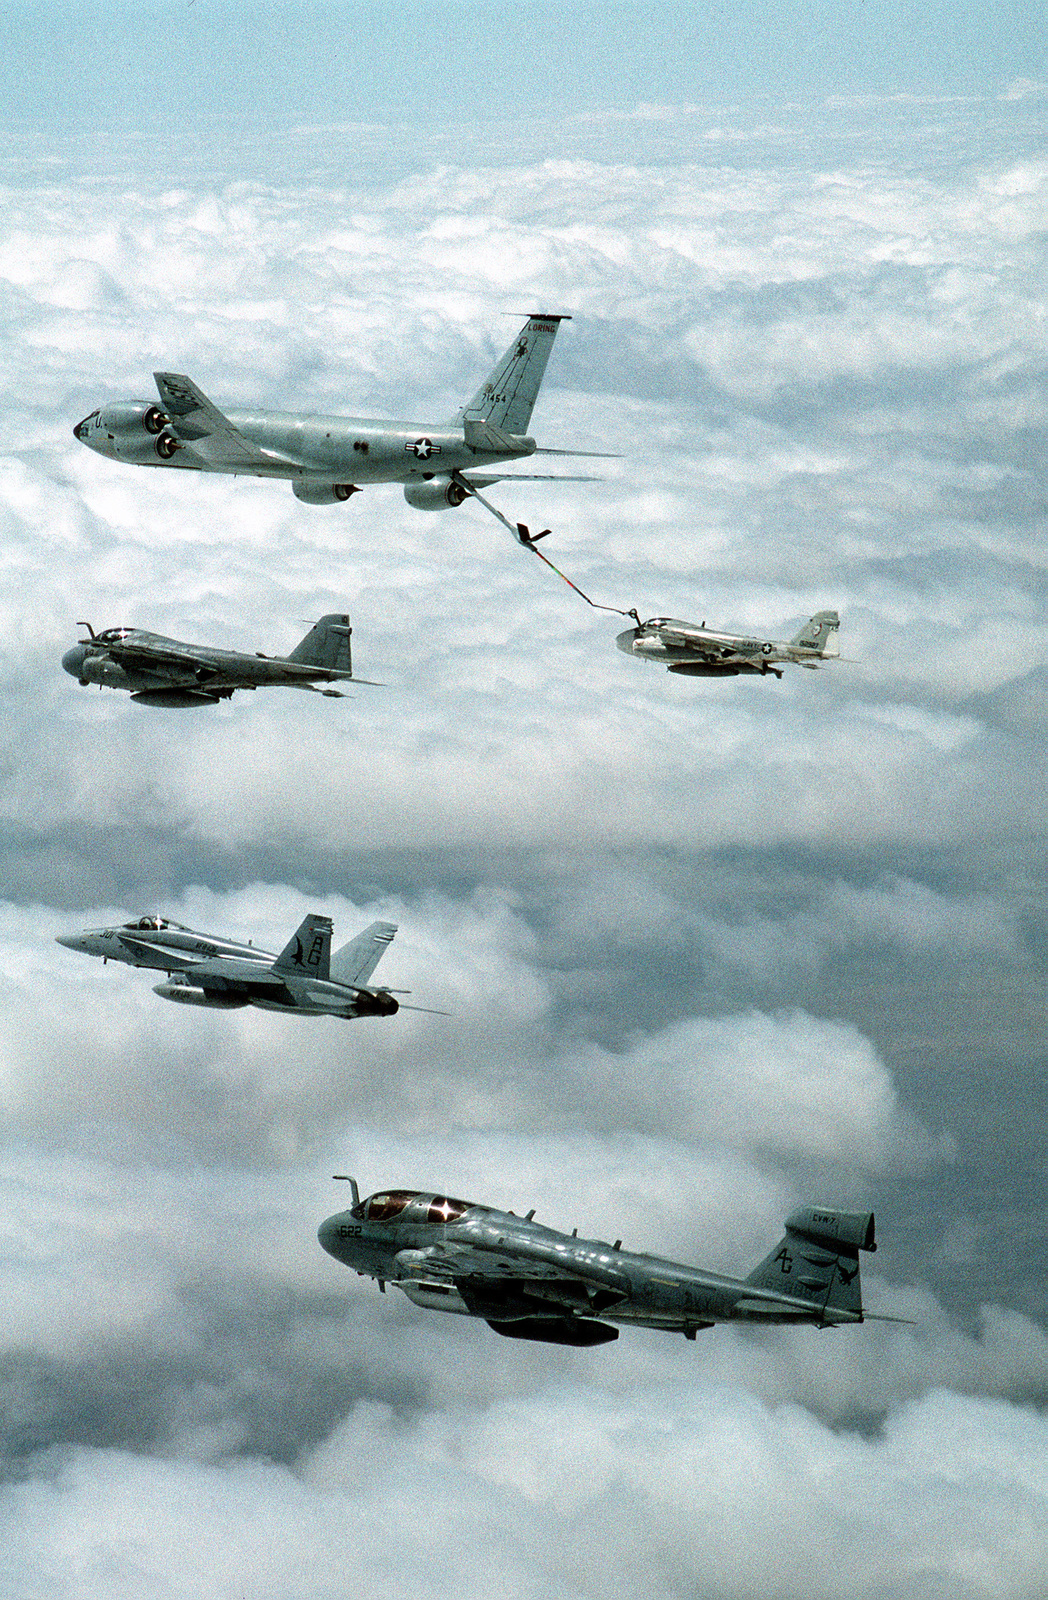 From top to bottom, a U.S. Air Force KC-135R Stratotanker refueling a KA-6D Intruder tanker from Attack Squadron 34 (VA-34), an A-6E Intruder attack aircraft, an F/A-18C Hornet from Strike Fighter Squadron 136 (VFA-136), and an EA-6B Prowler from Tactical Electronic Warfare Squadron 140 (VAQ-140) during flight operations off the nuclear-powered USS DWIGHT D. EISENHOWER (CVN-69) in the Persian Gulf